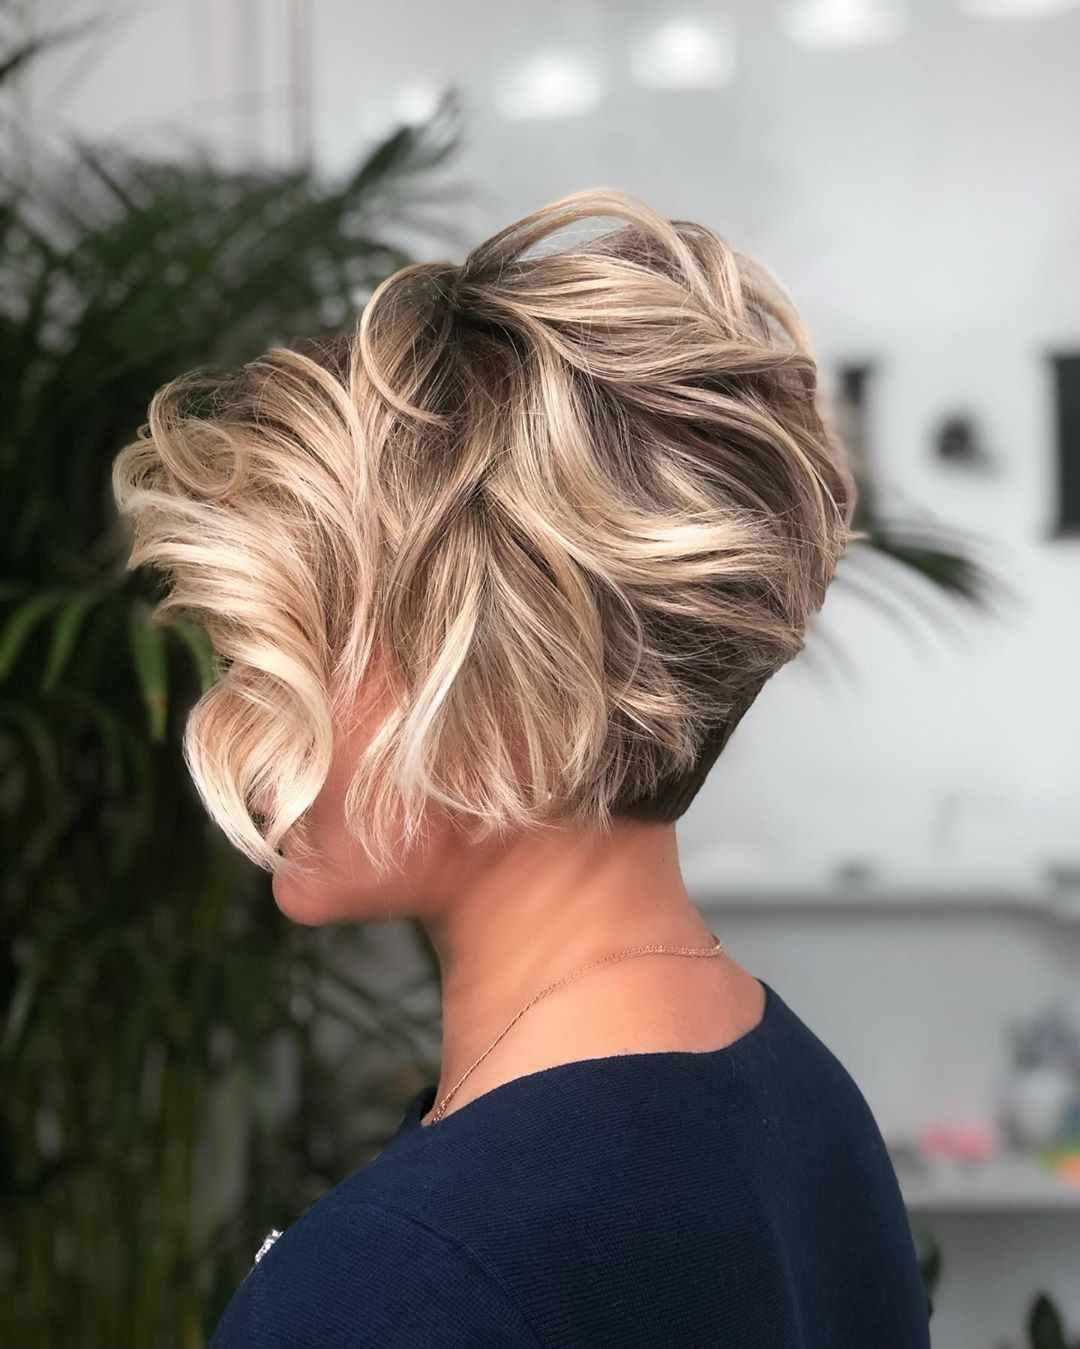 40+ Latest Short Hairstyles for Winter 2020 – Hair